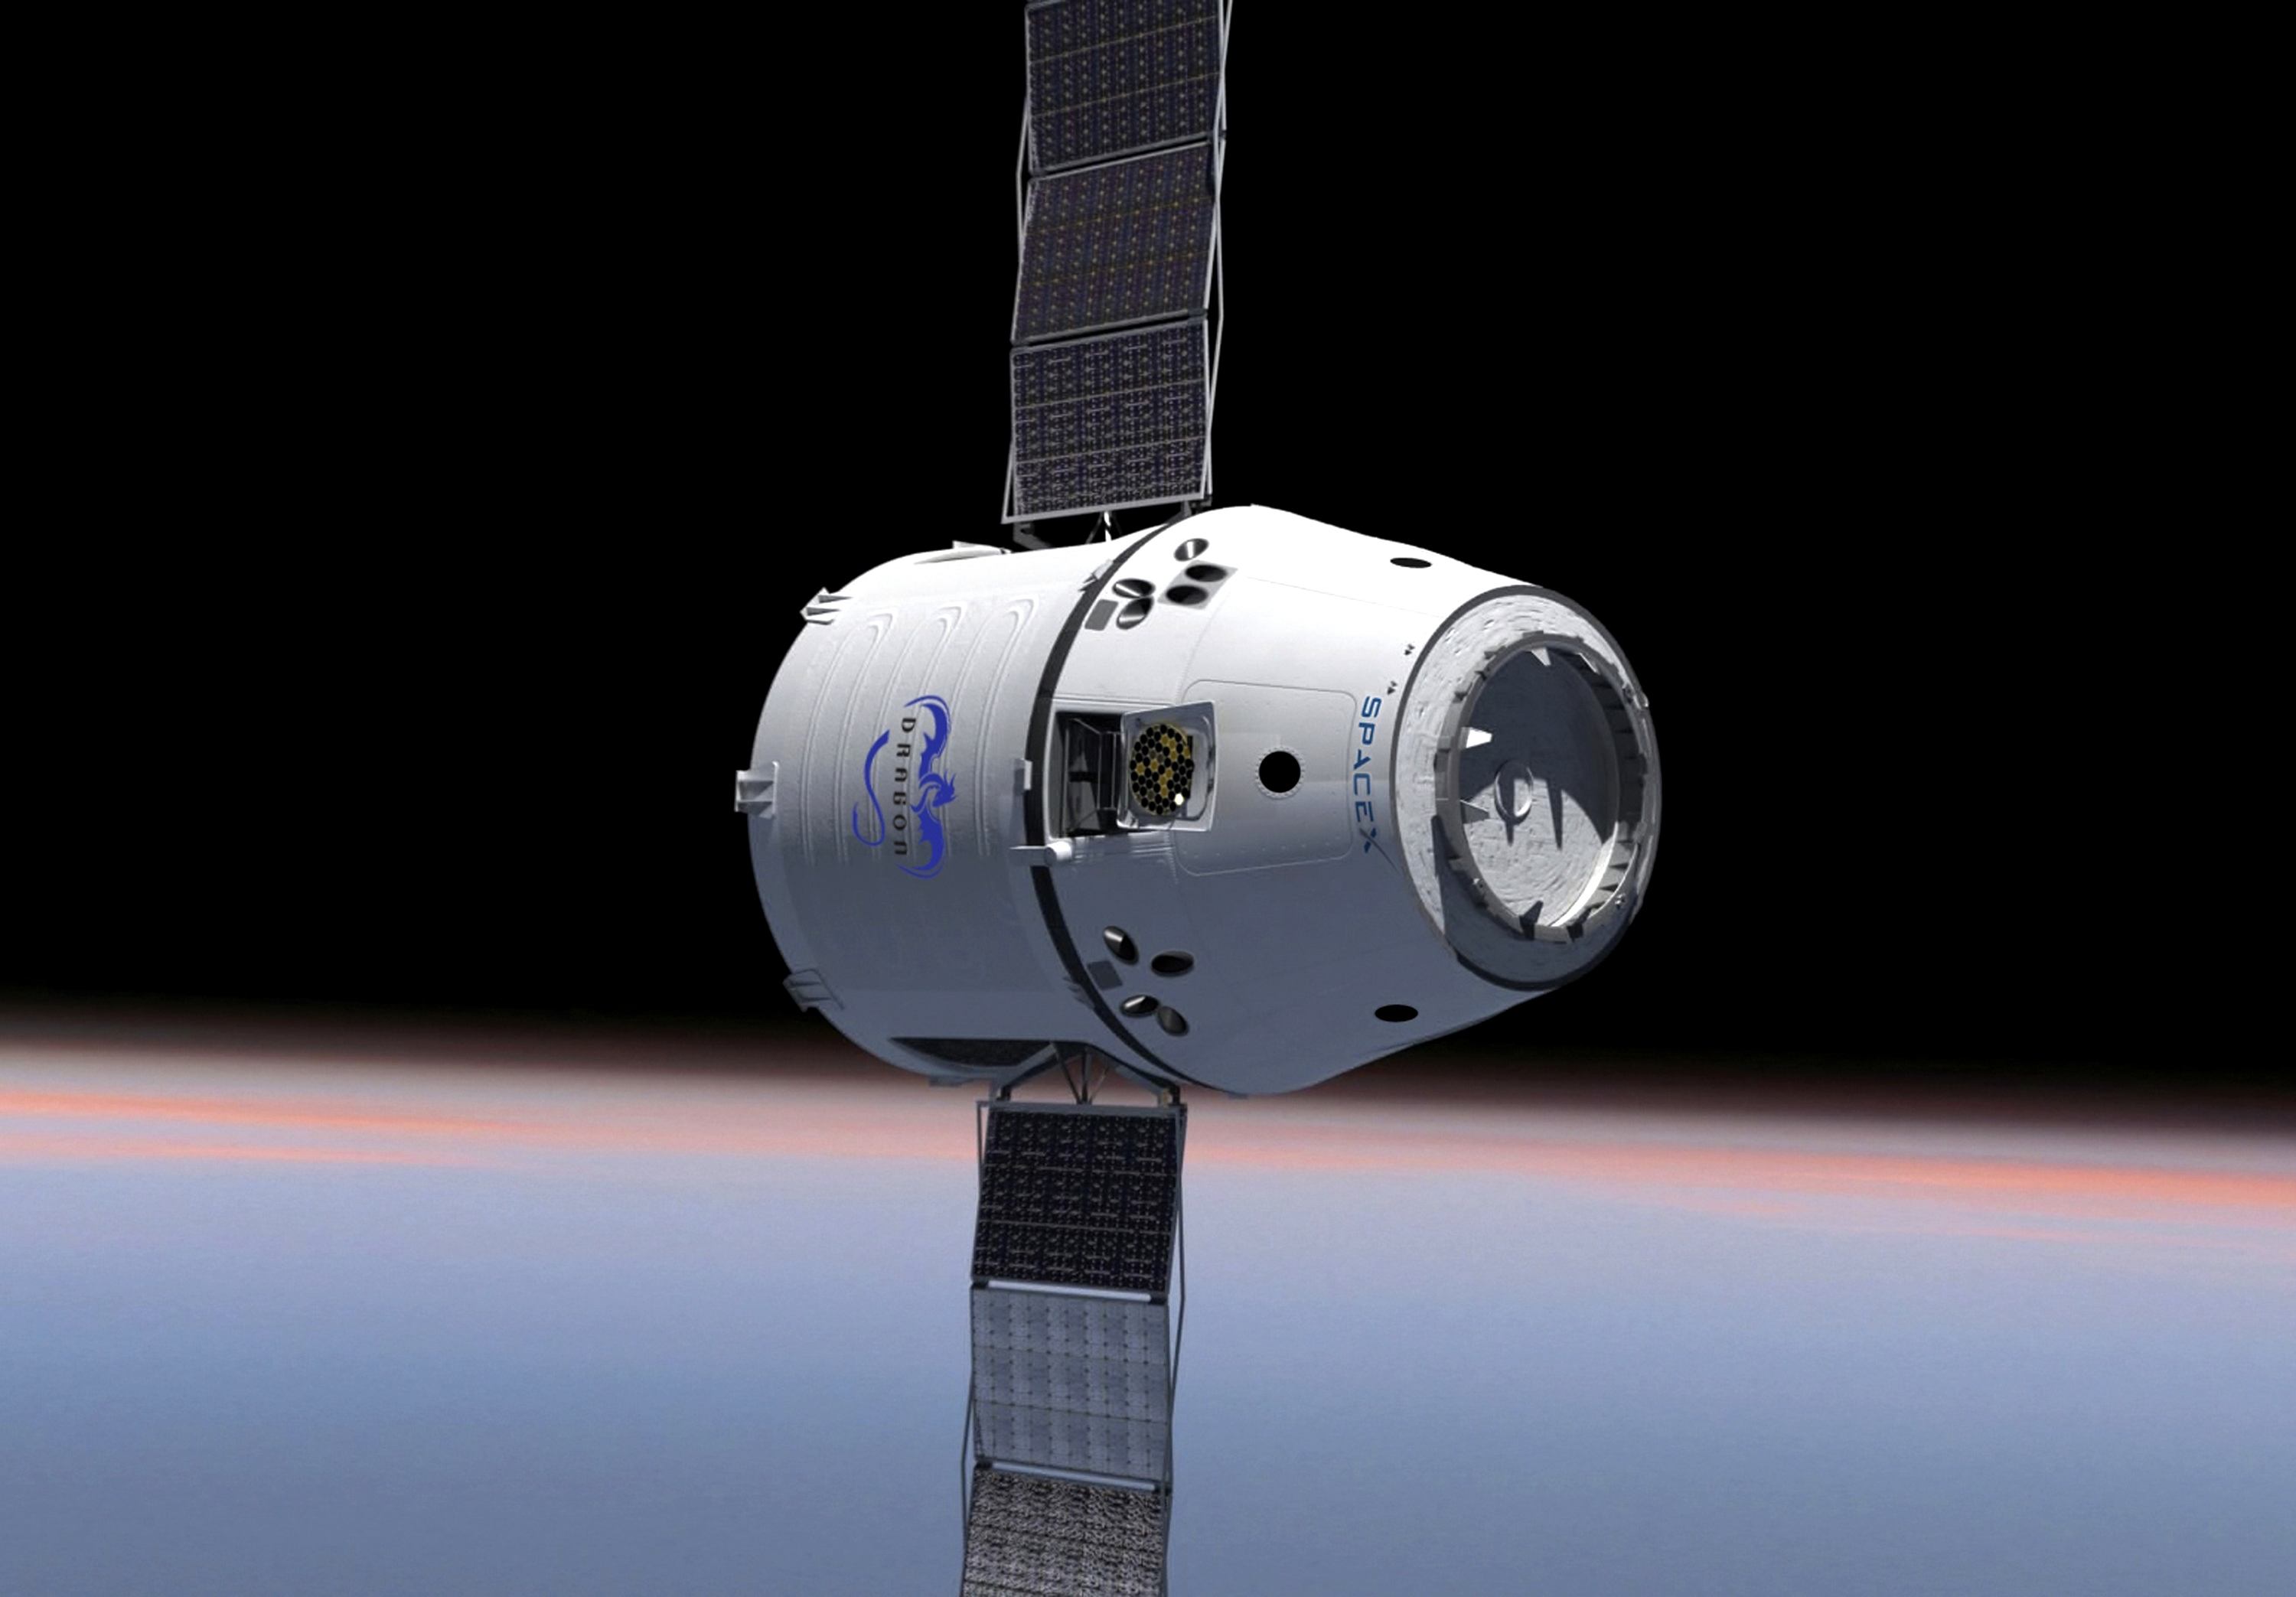 NASA is going to use private spacecraft to deliver astronauts to the ISS 22